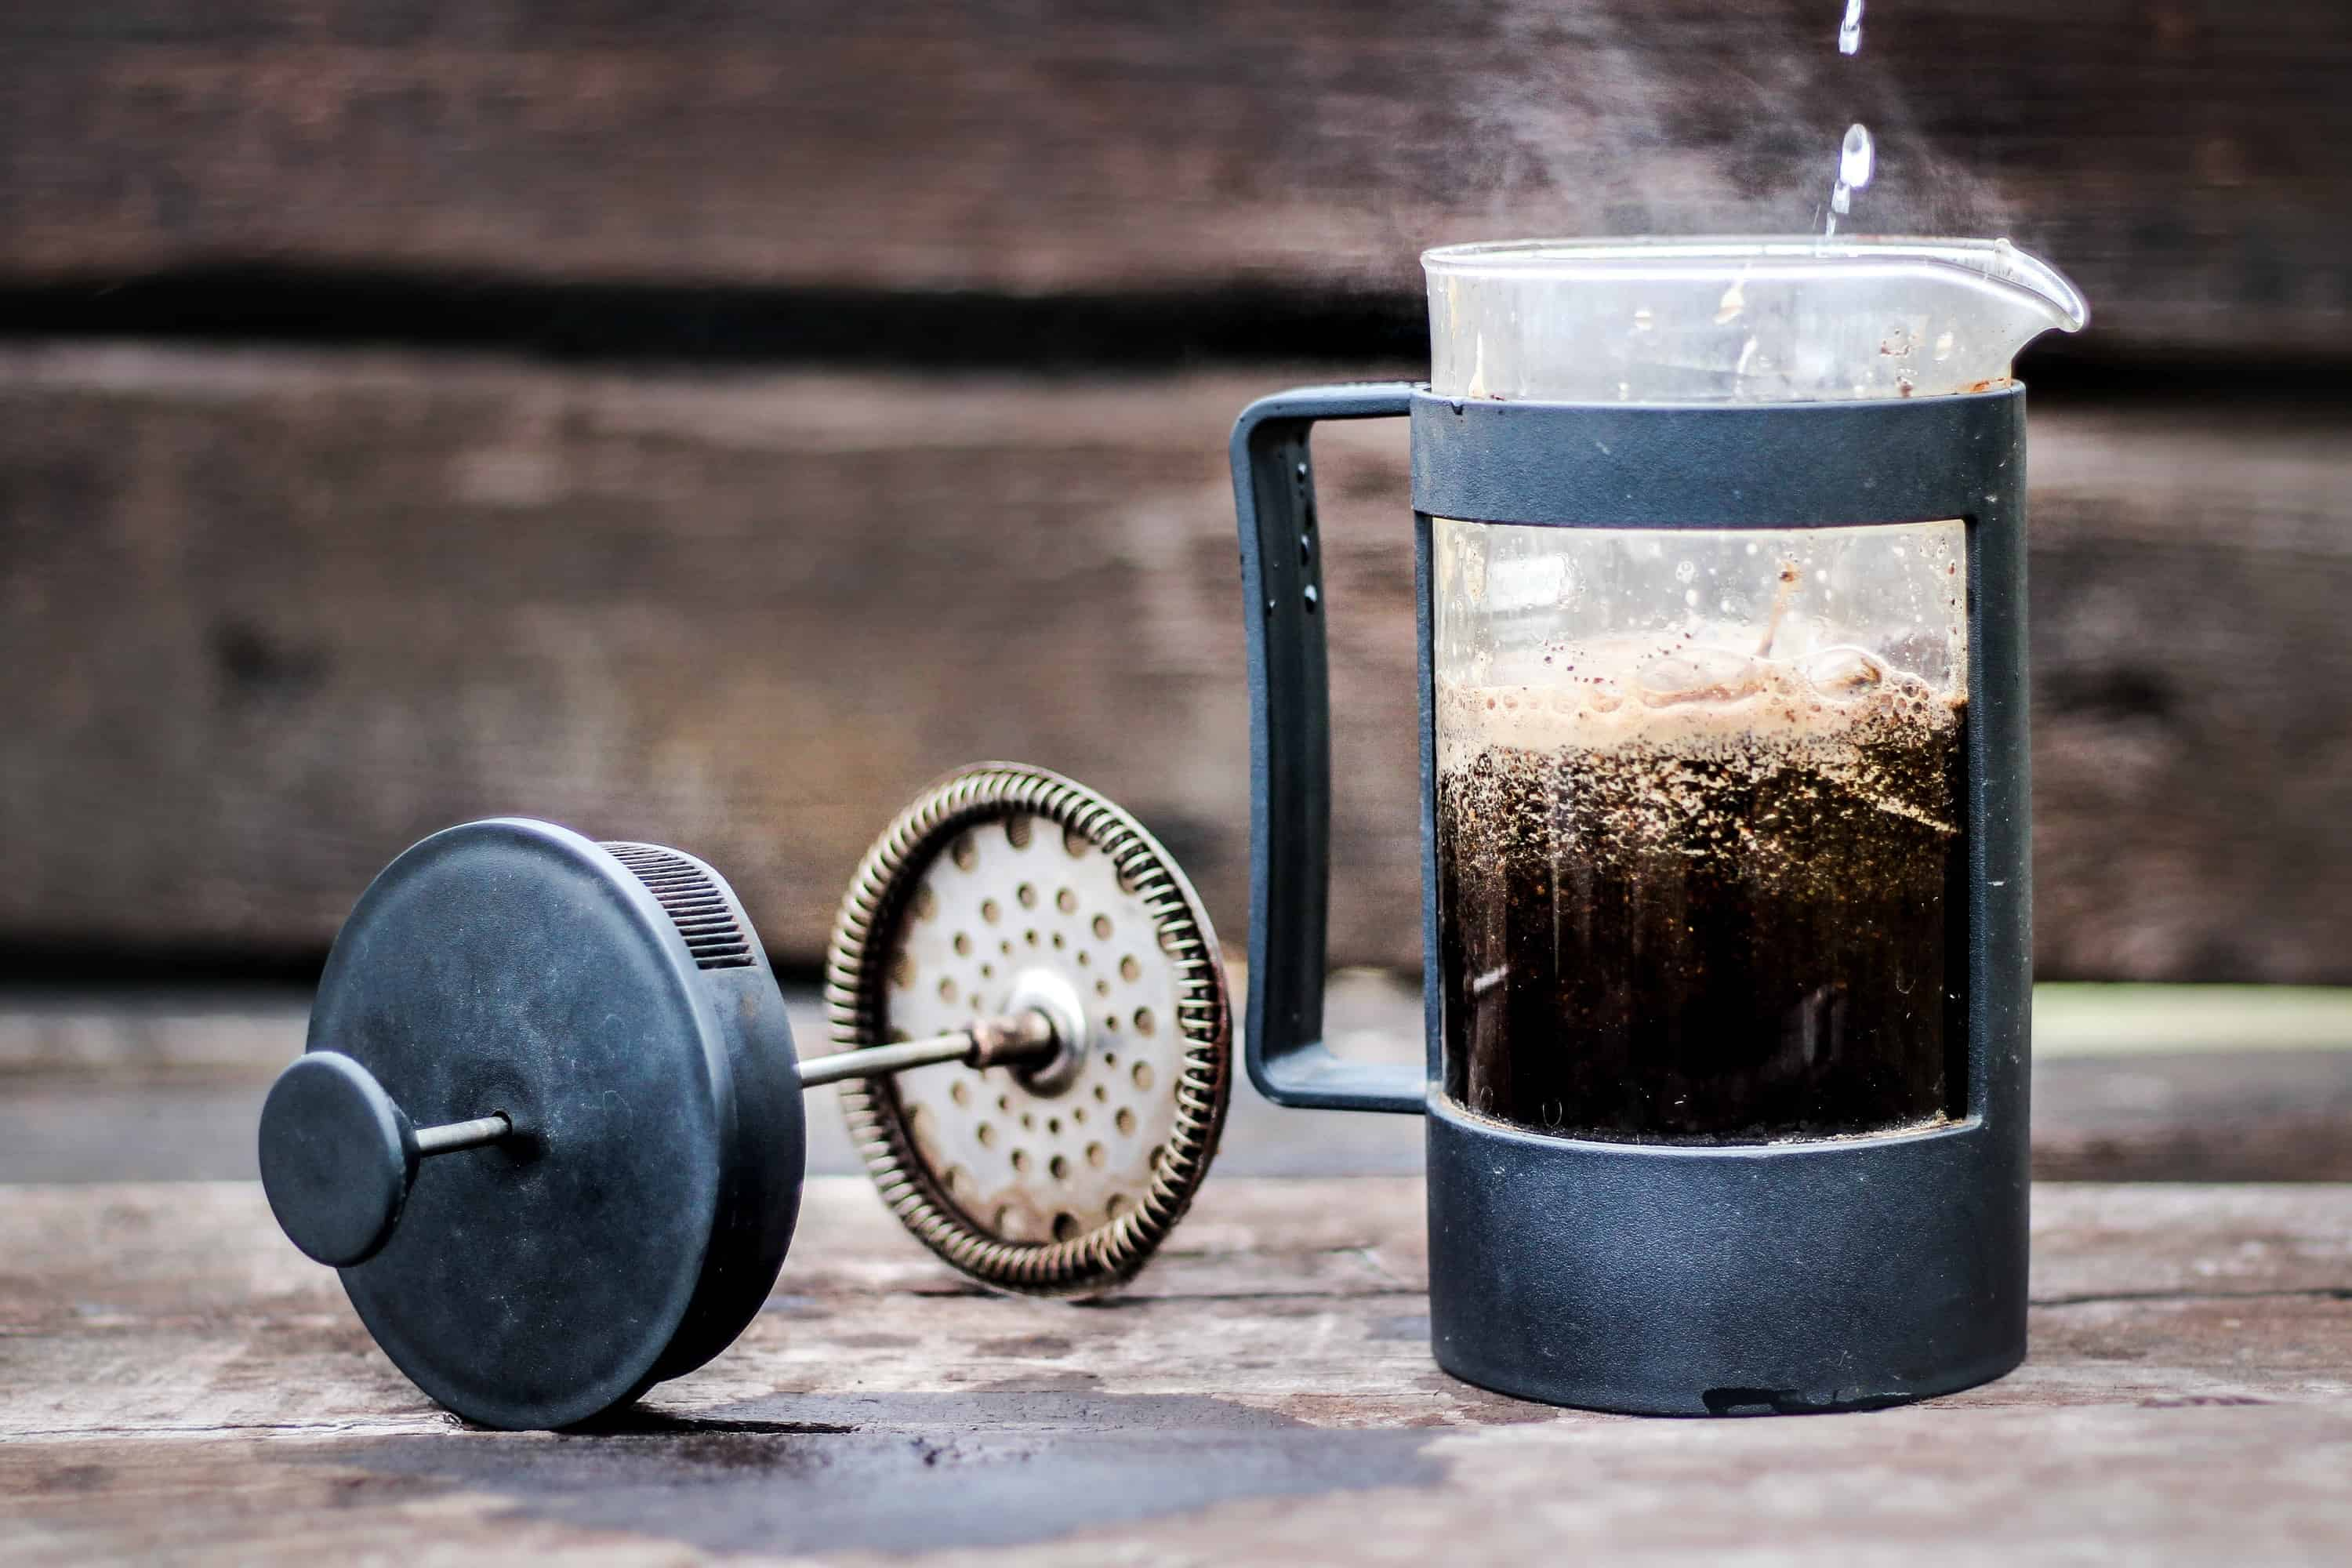 Best coffee for French Press - 7 of our favourite coffees PLUS some tips on how to get the most flavour from your French Press #frenchpress #coffee #coffeetips #coffeebeans